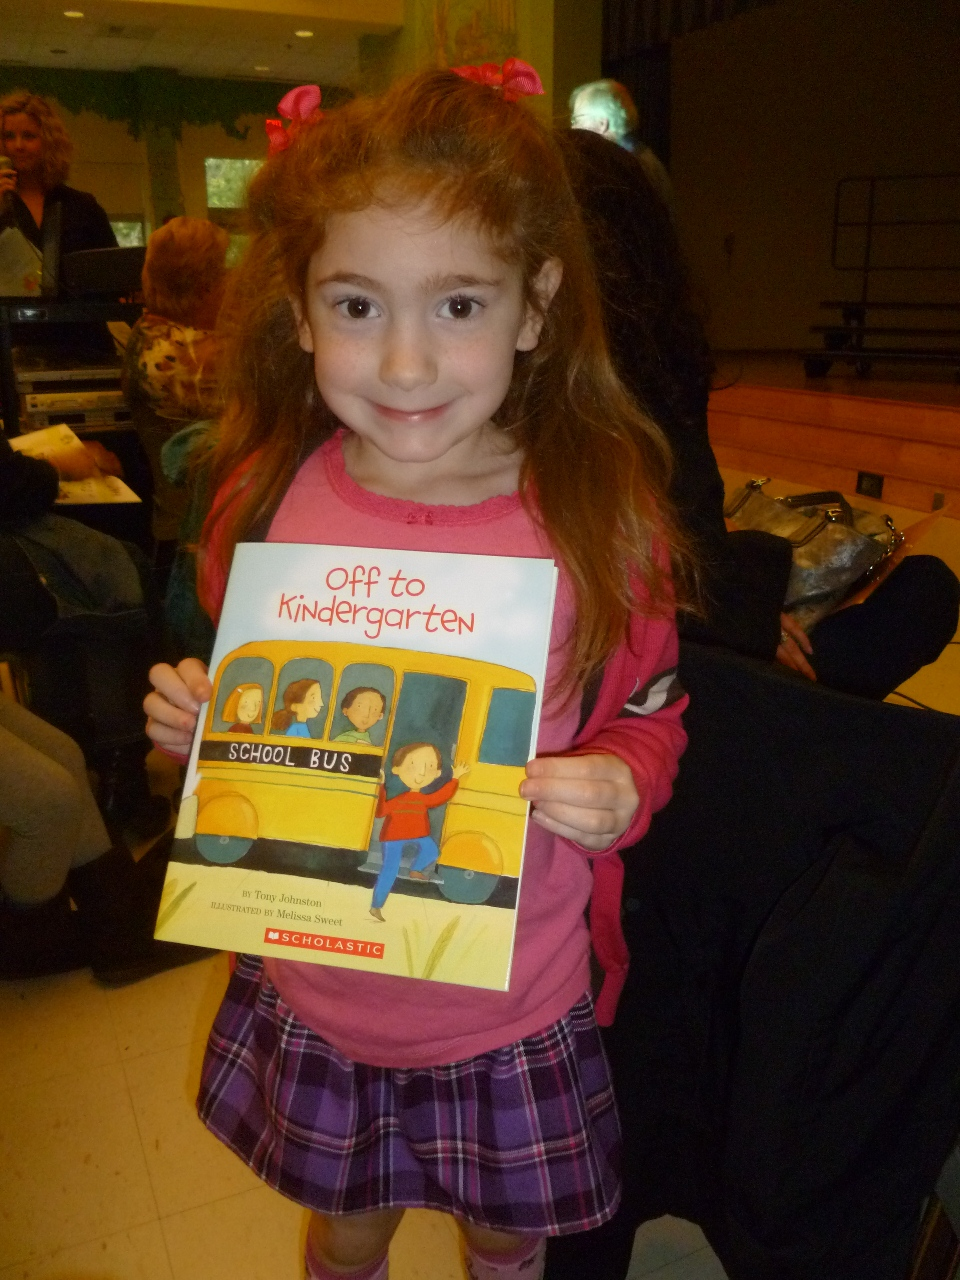 kindergarten girl side Today we had Kindergarten orientation. They called all the kids up on the stage to listen to a story. Lauren saw many friends from preschool, ...